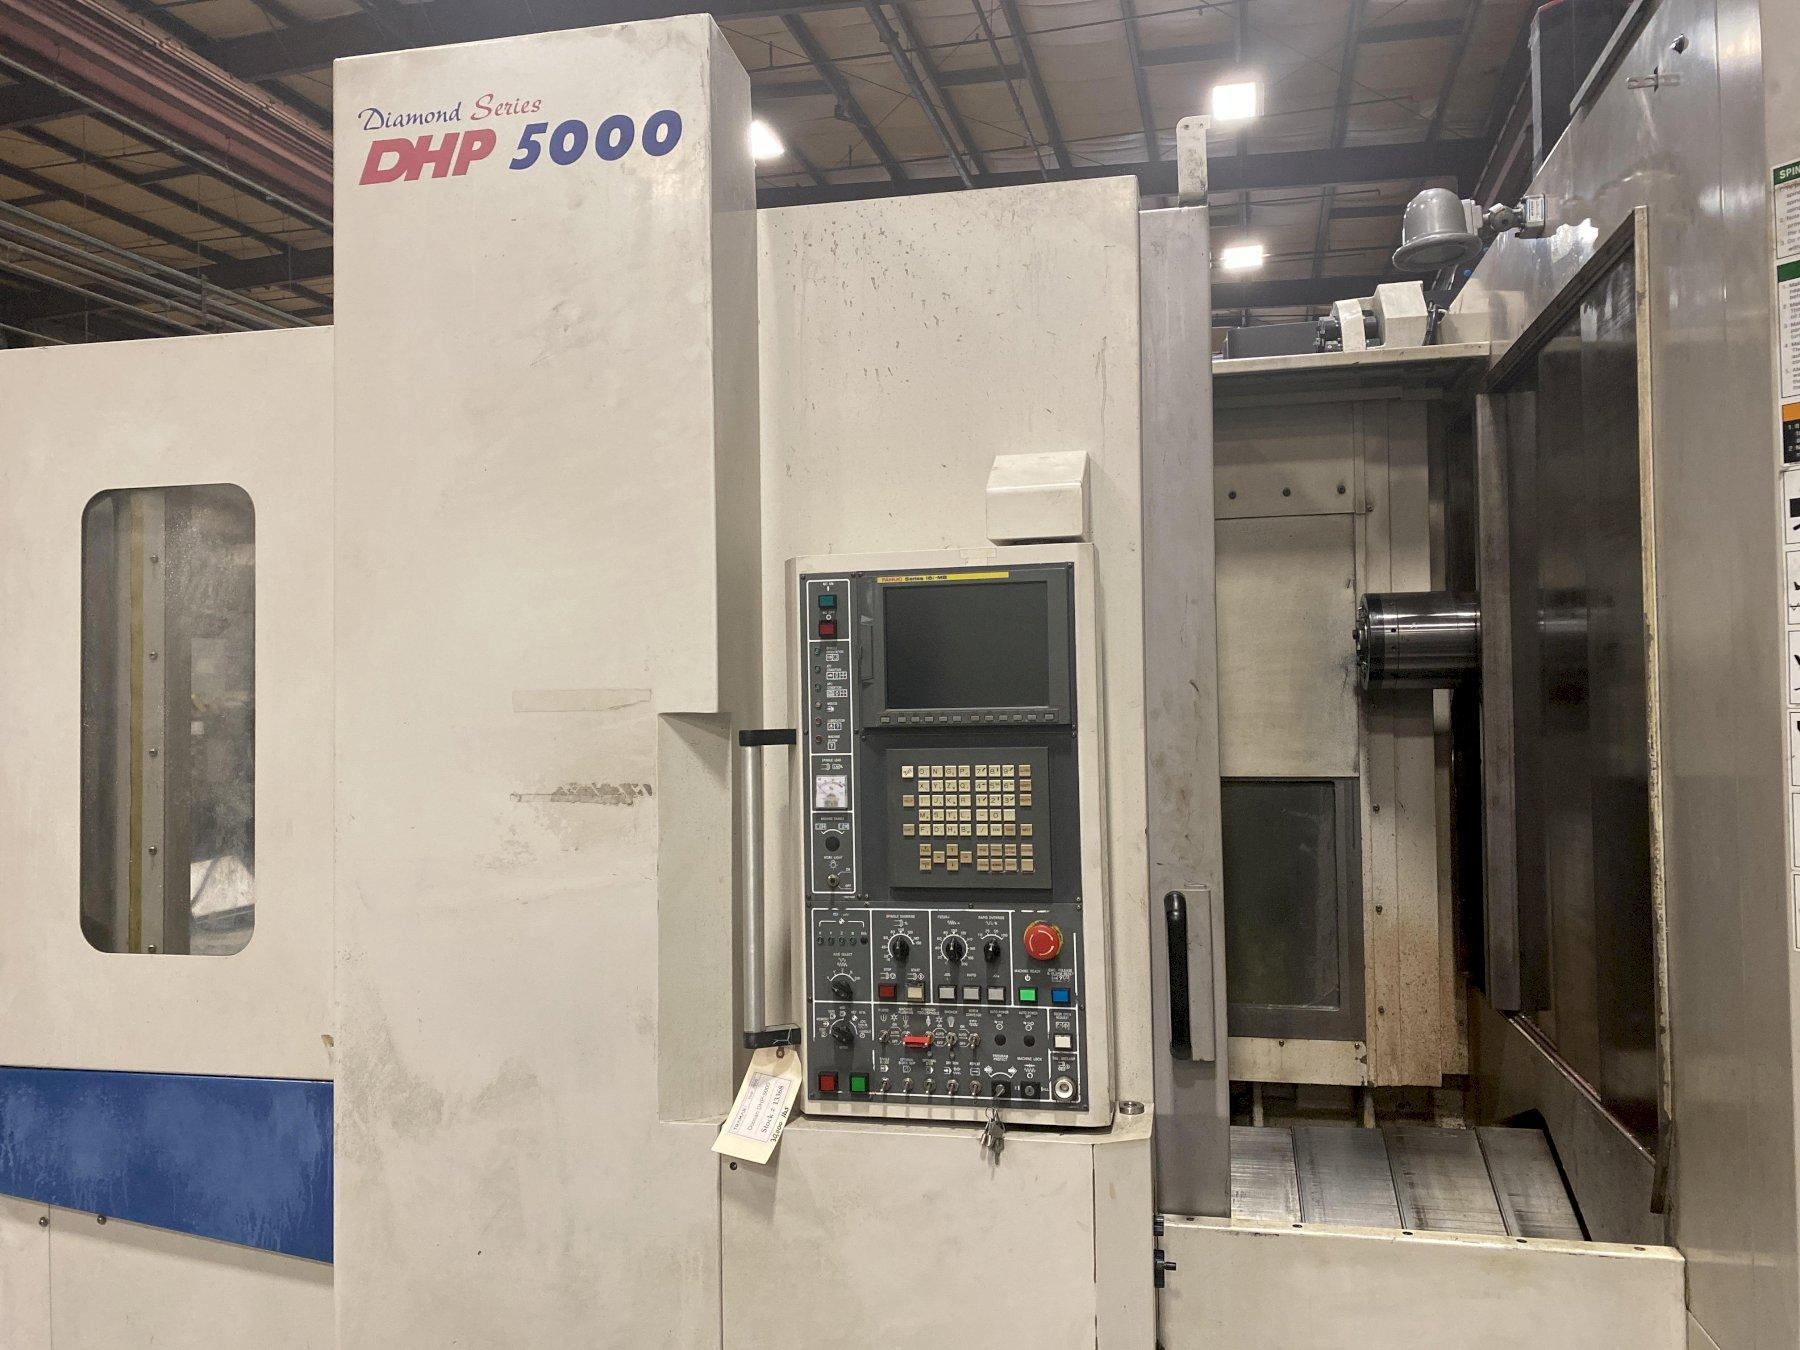 Doosan DHP 5000 CNC Horizontal Machining Center 2006